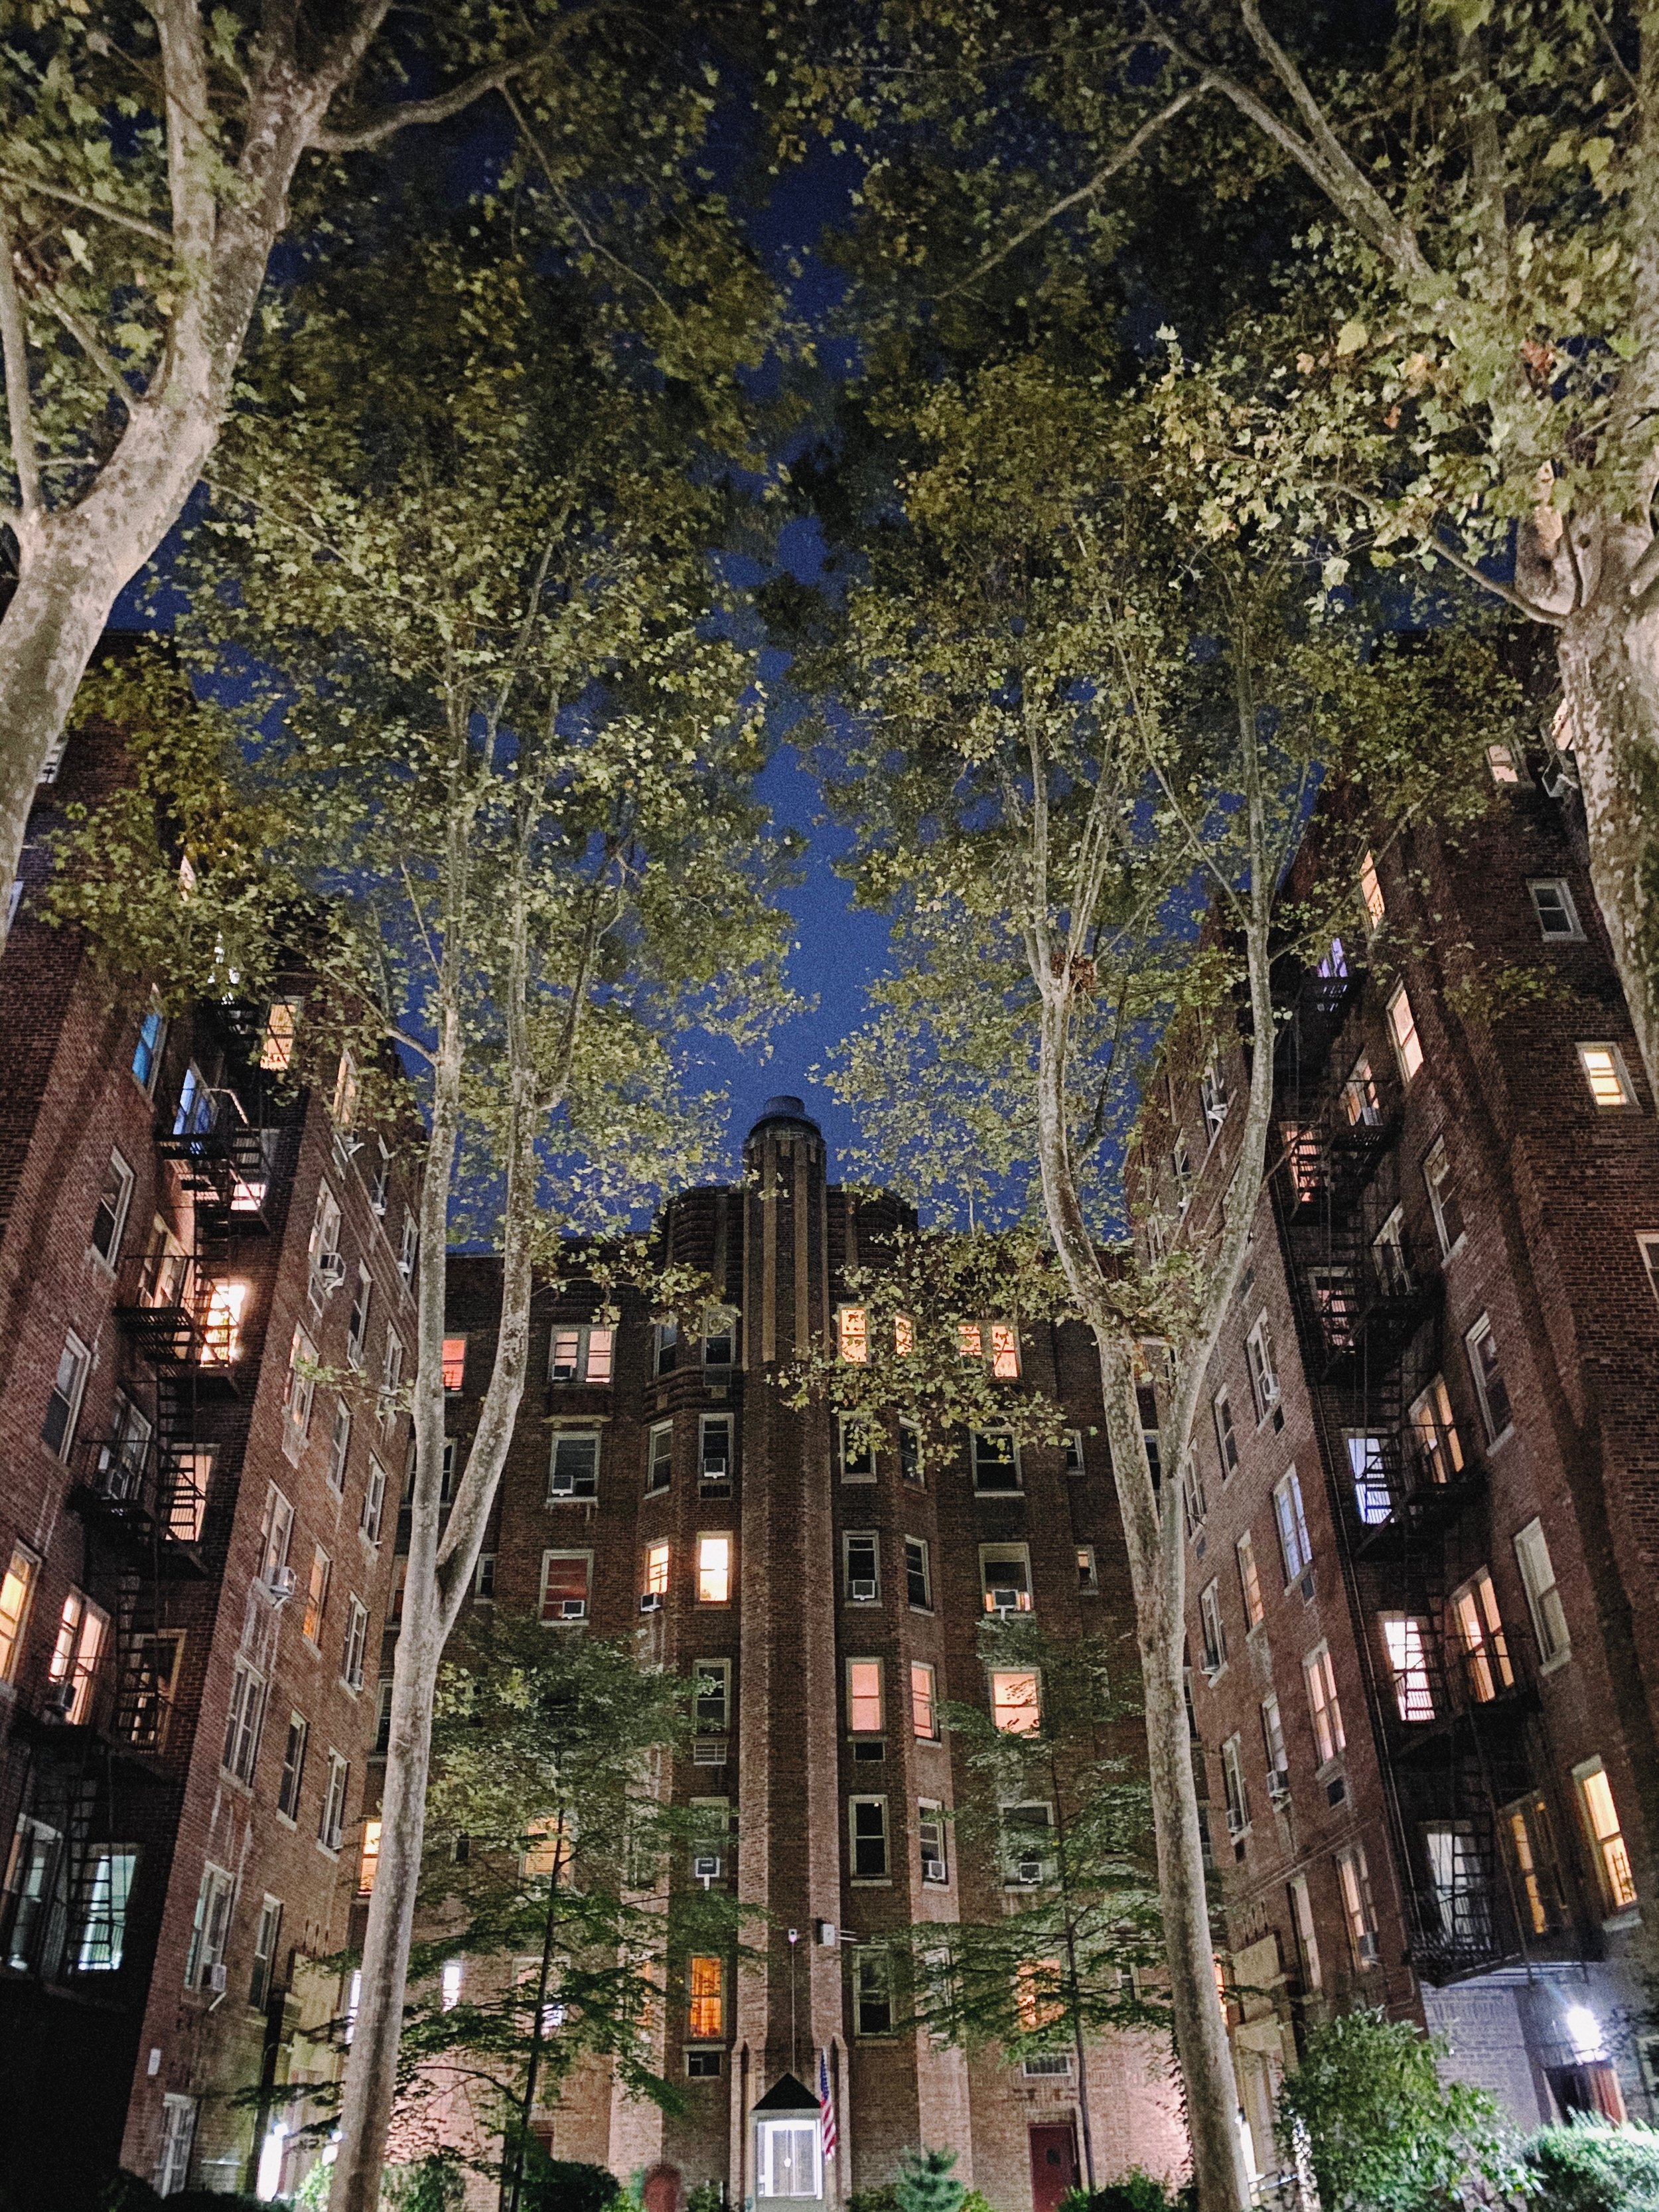 I've taken this photo of my courtyard many times, but the scene never looked this. Notice the uplighting on the trees and the buildings.